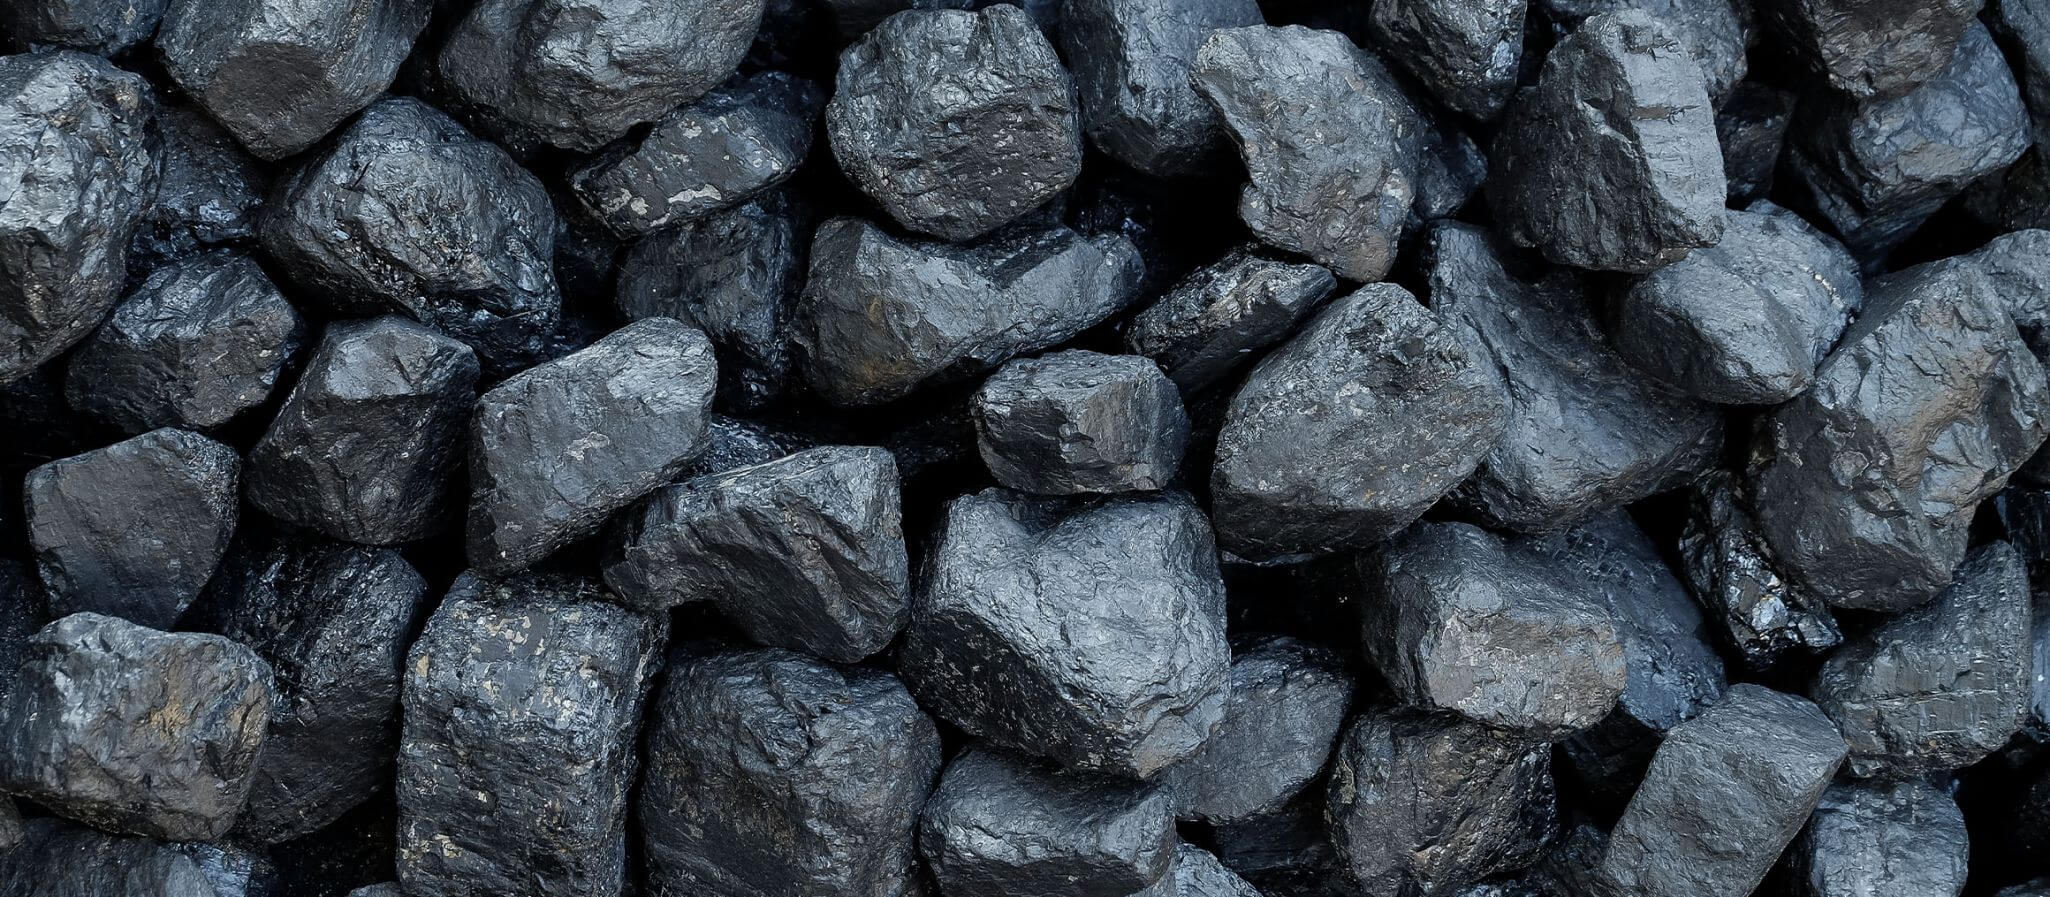 Bokela Industry Ore and Minerals Coal